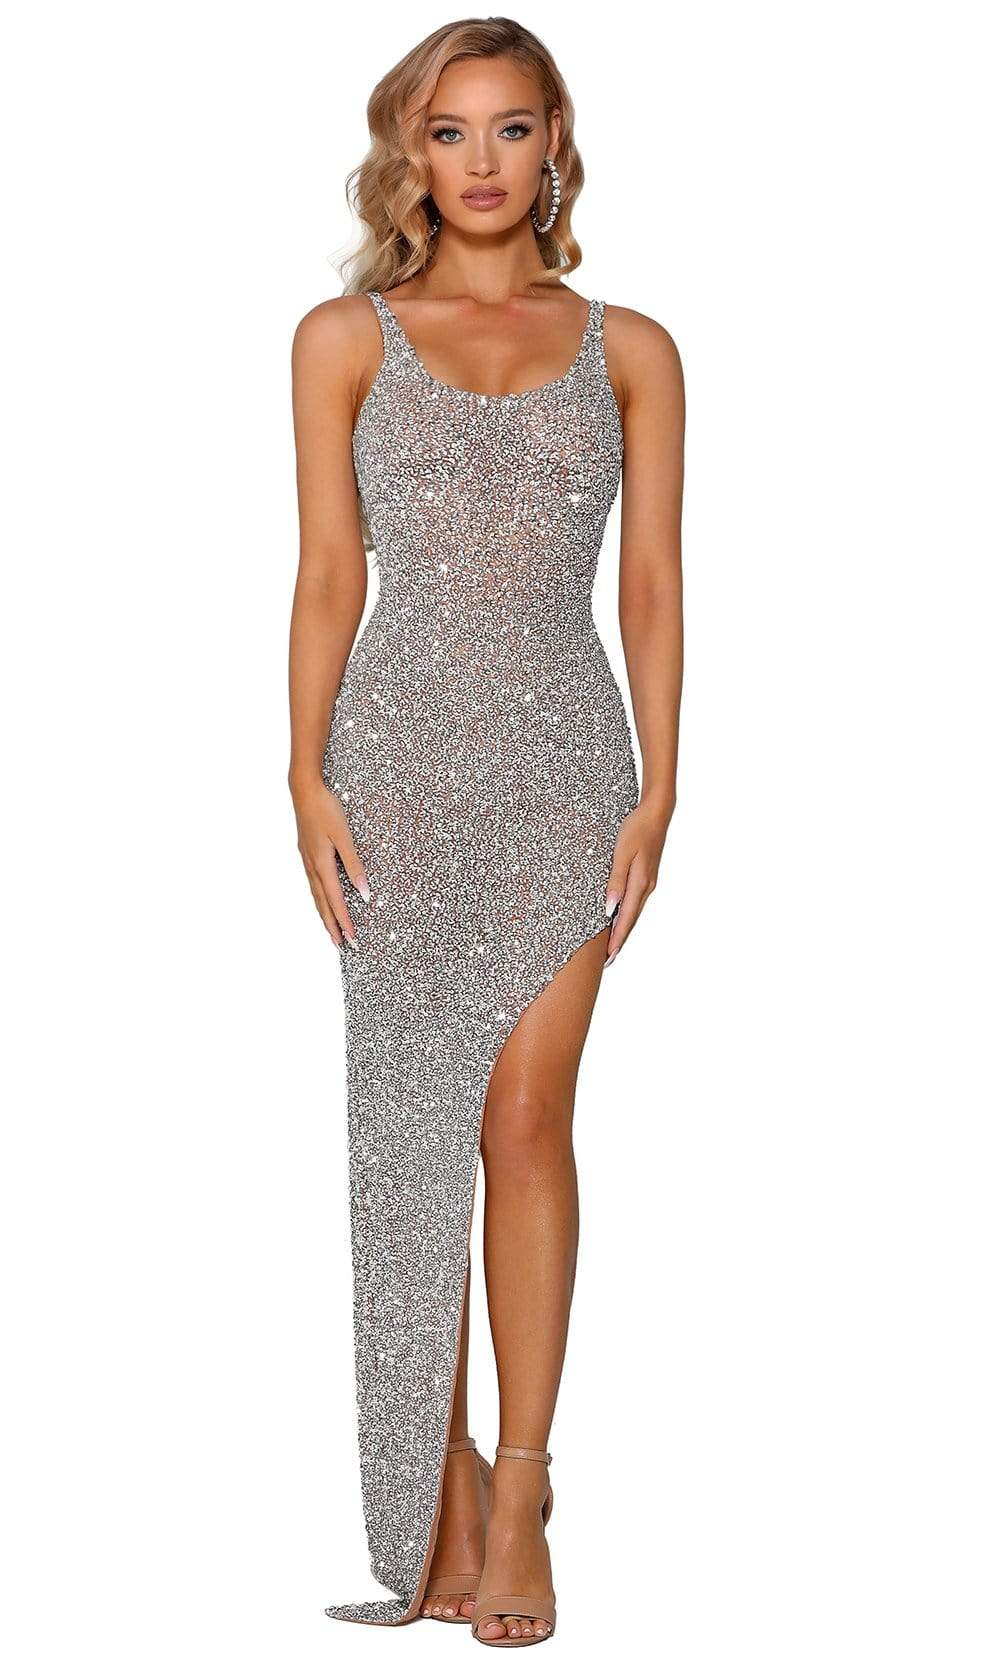 Portia and Scarlett - PS4098C Embellished Scoop Dress With Slit from Portia and Scarlett